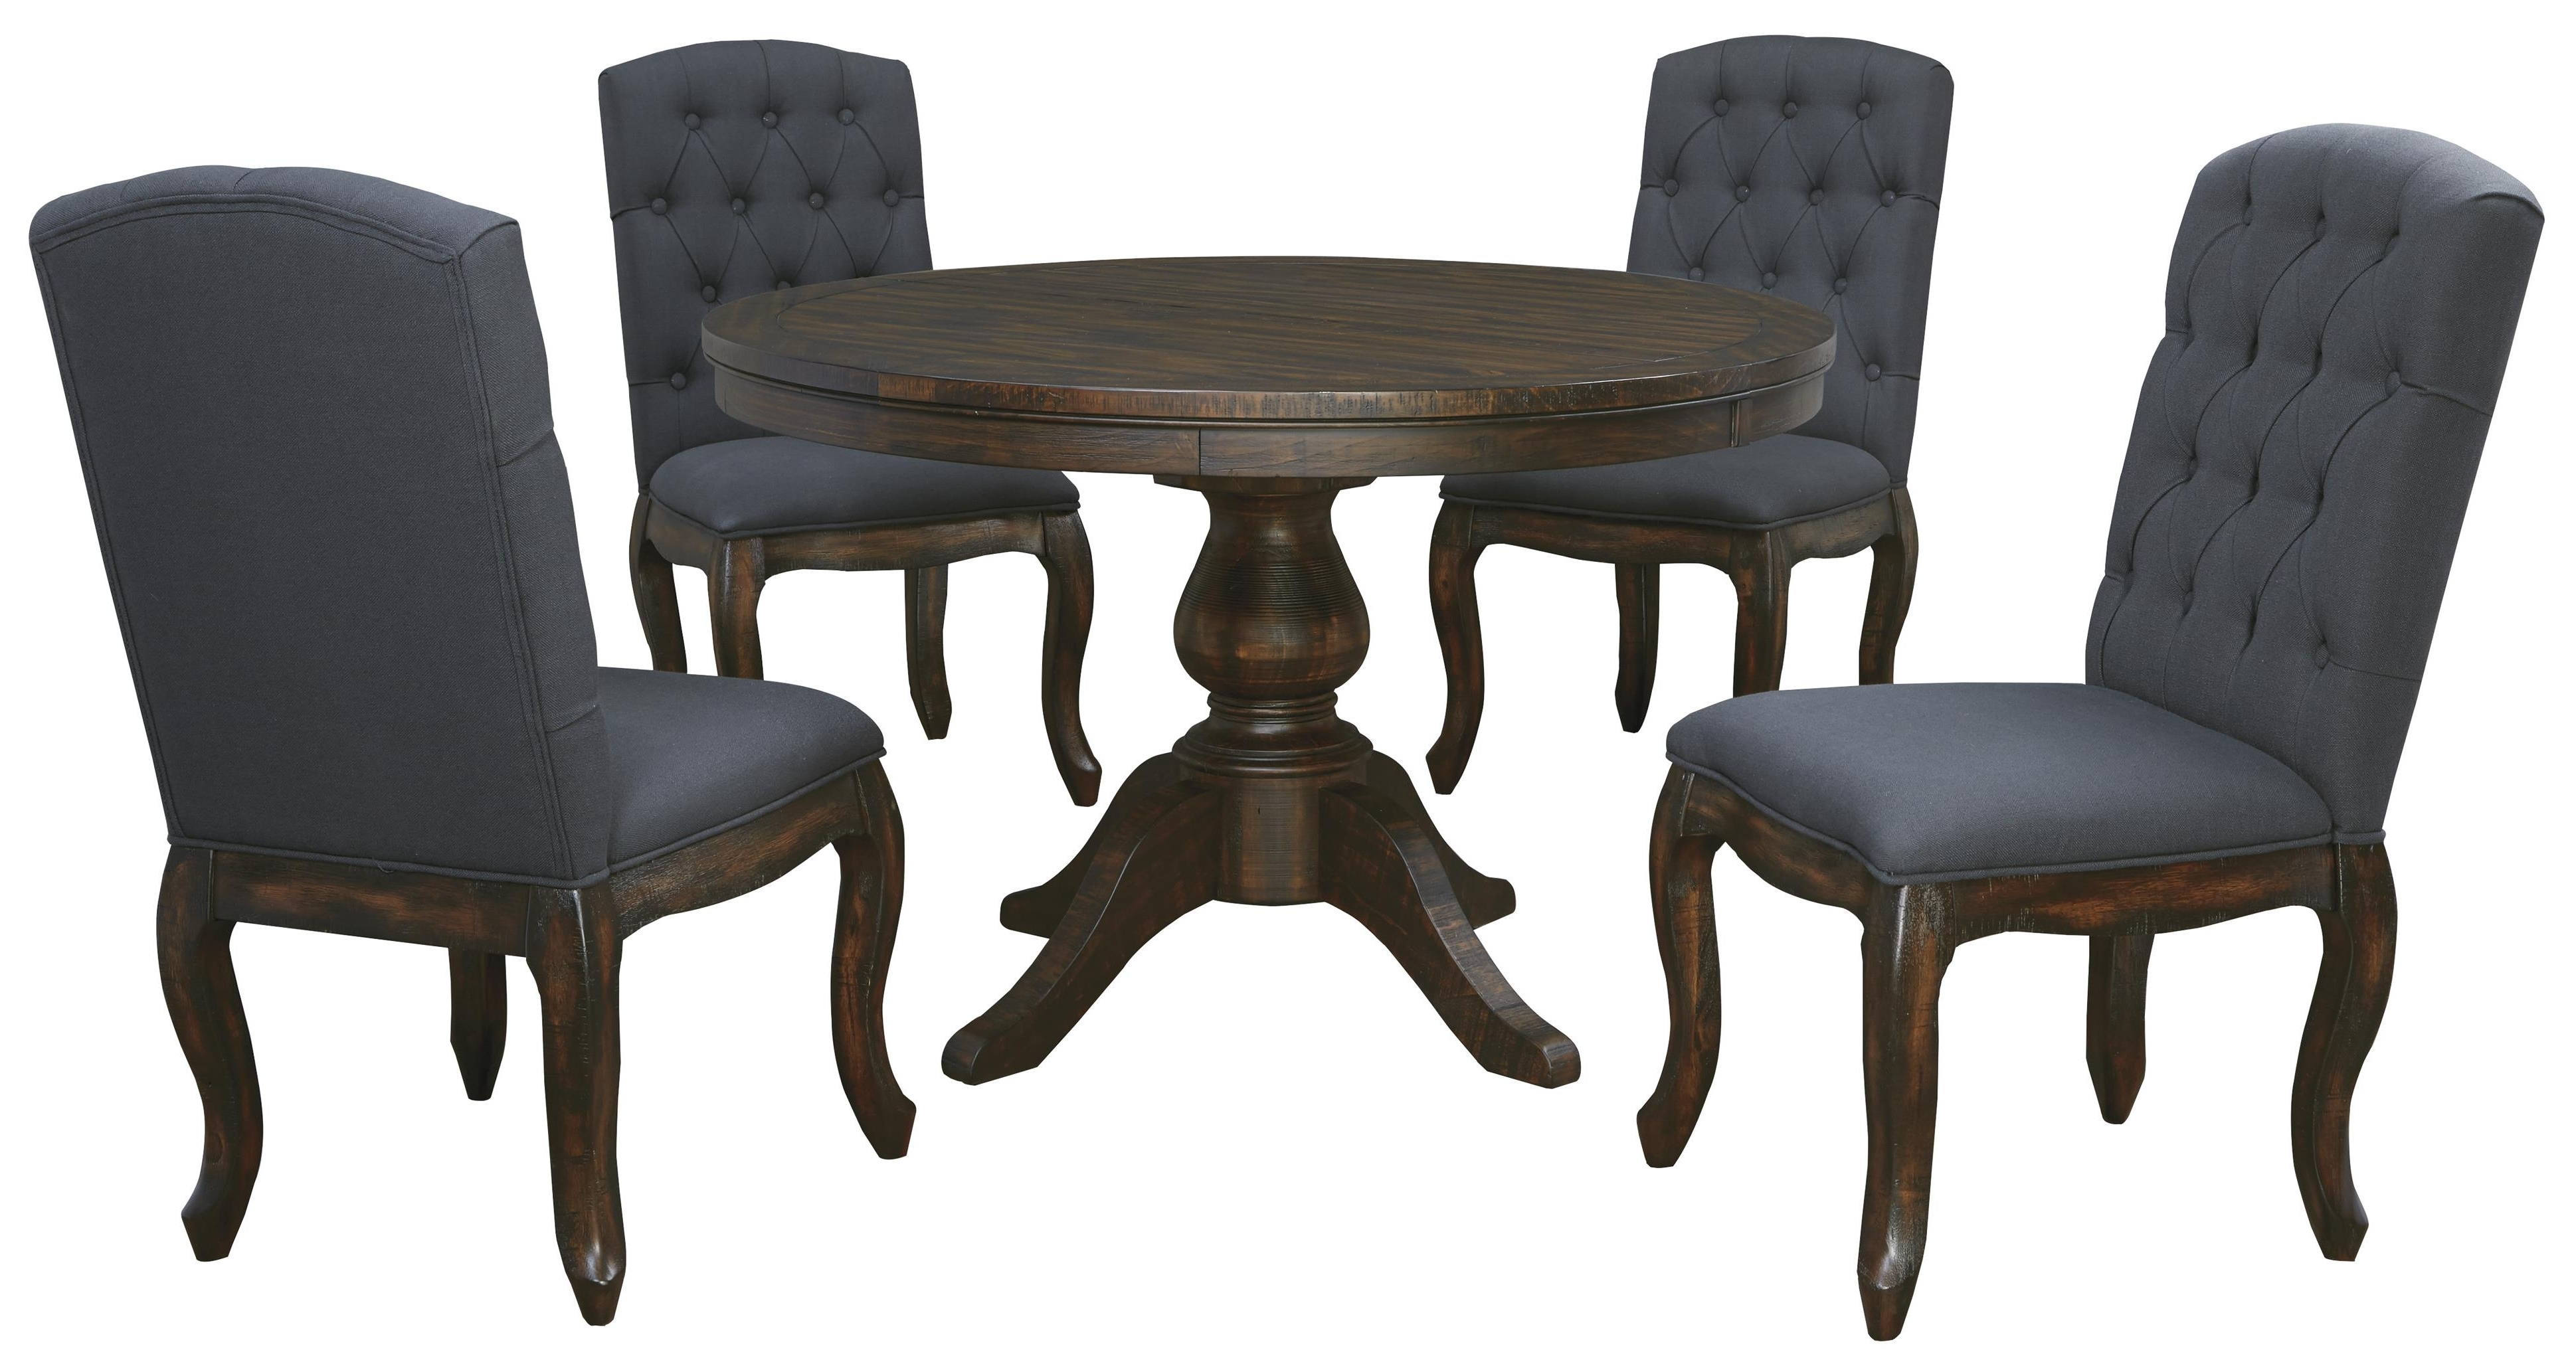 5 Piece Round Dining Table Set With Upholstered Side Chairs Within Widely Used Craftsman 9 Piece Extension Dining Sets With Uph Side Chairs (View 5 of 25)